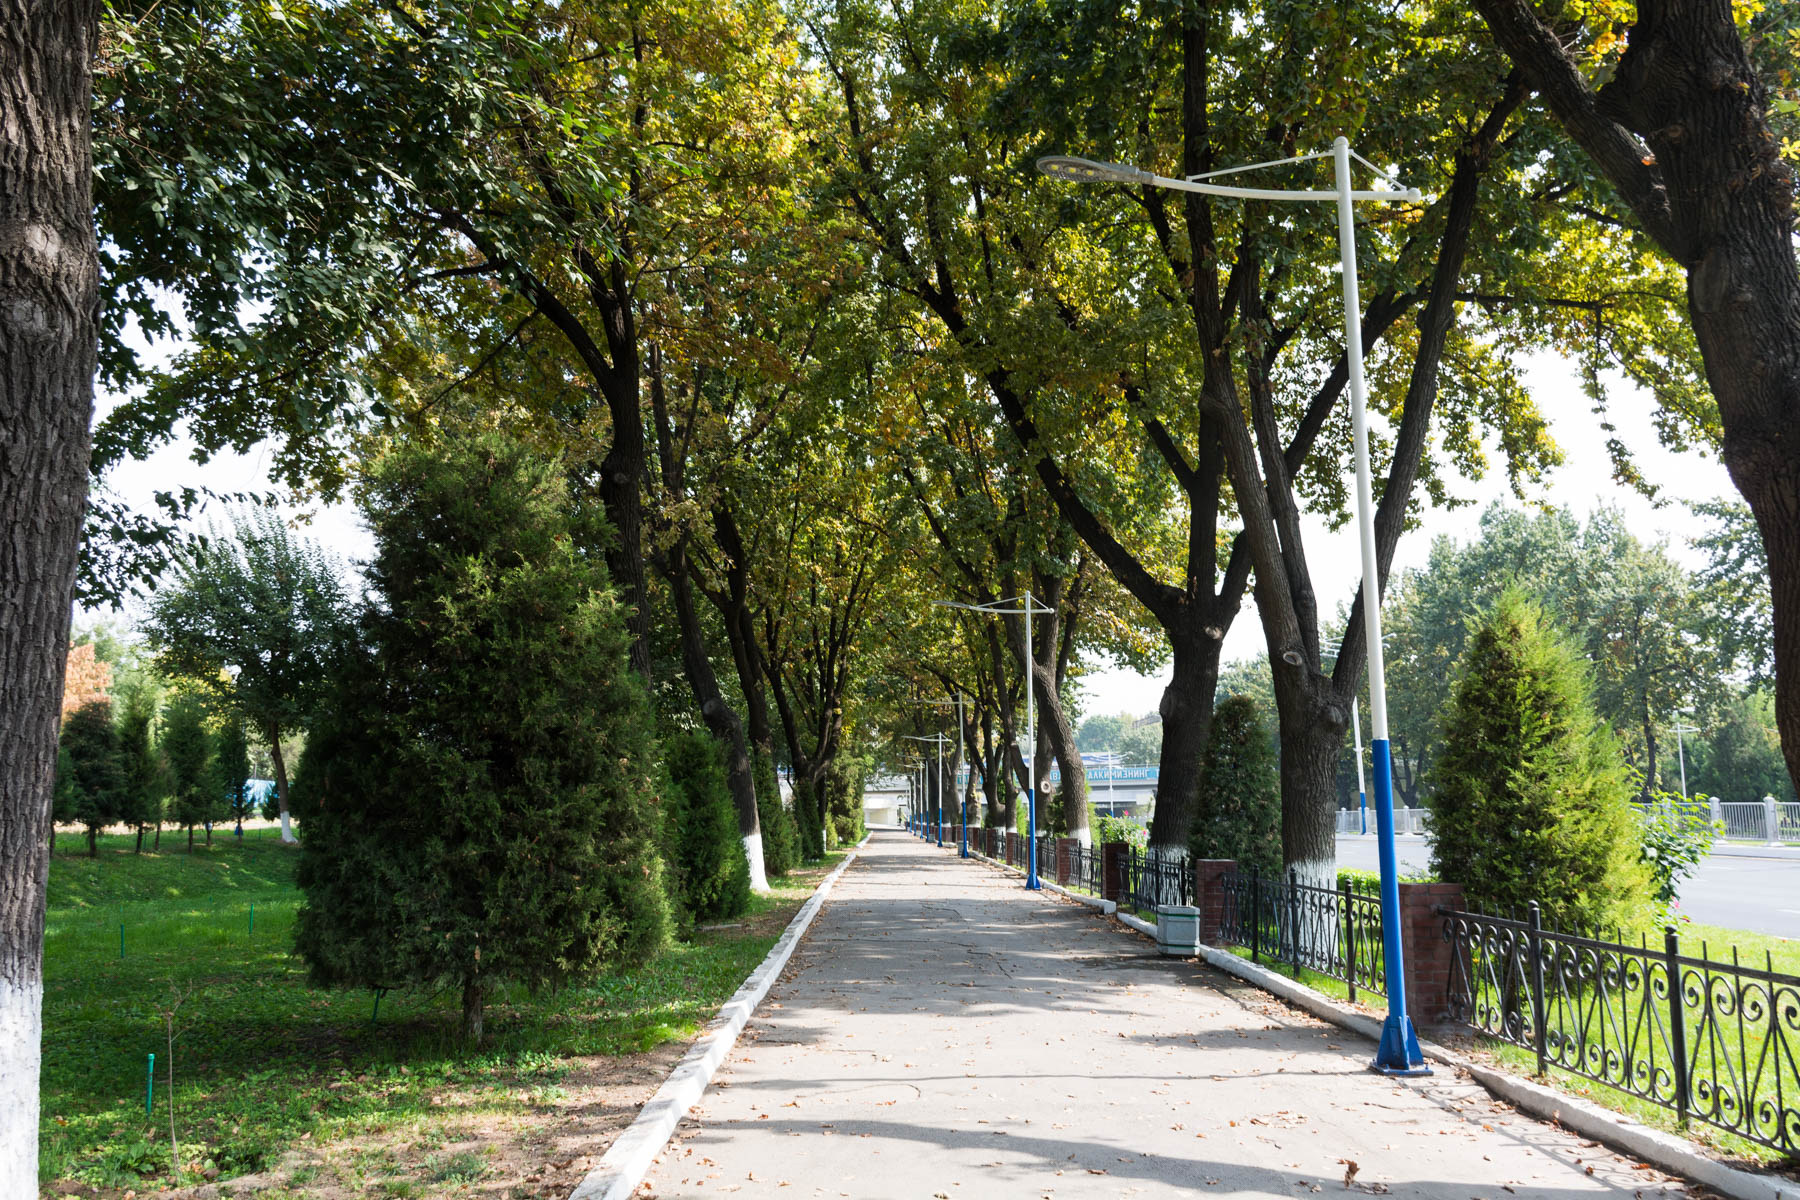 A path on the way to the Indian Embassy in Tashkent, Uzbekistan - Lost With Purpose